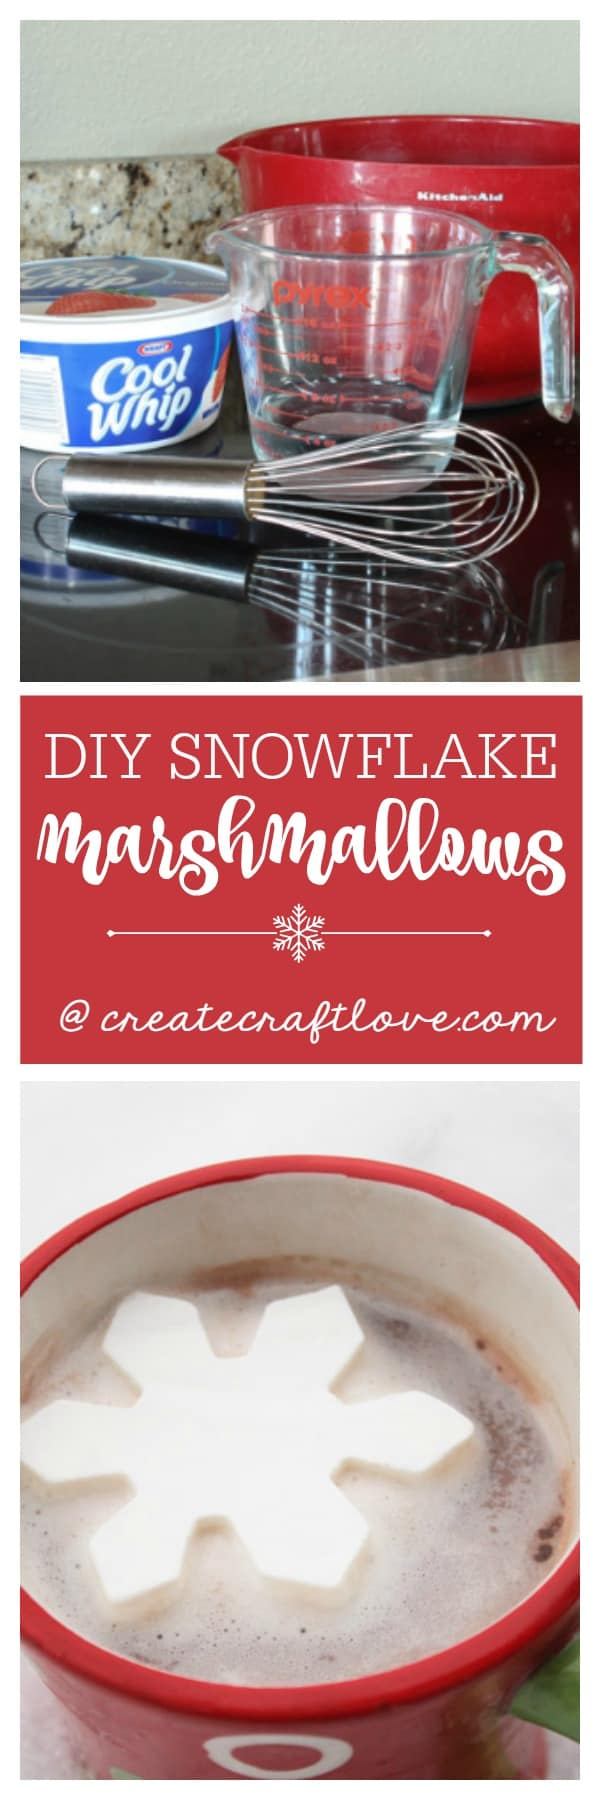 Whip up these DIY Snowflake Marshmallows as a fun little treat on a cold day!